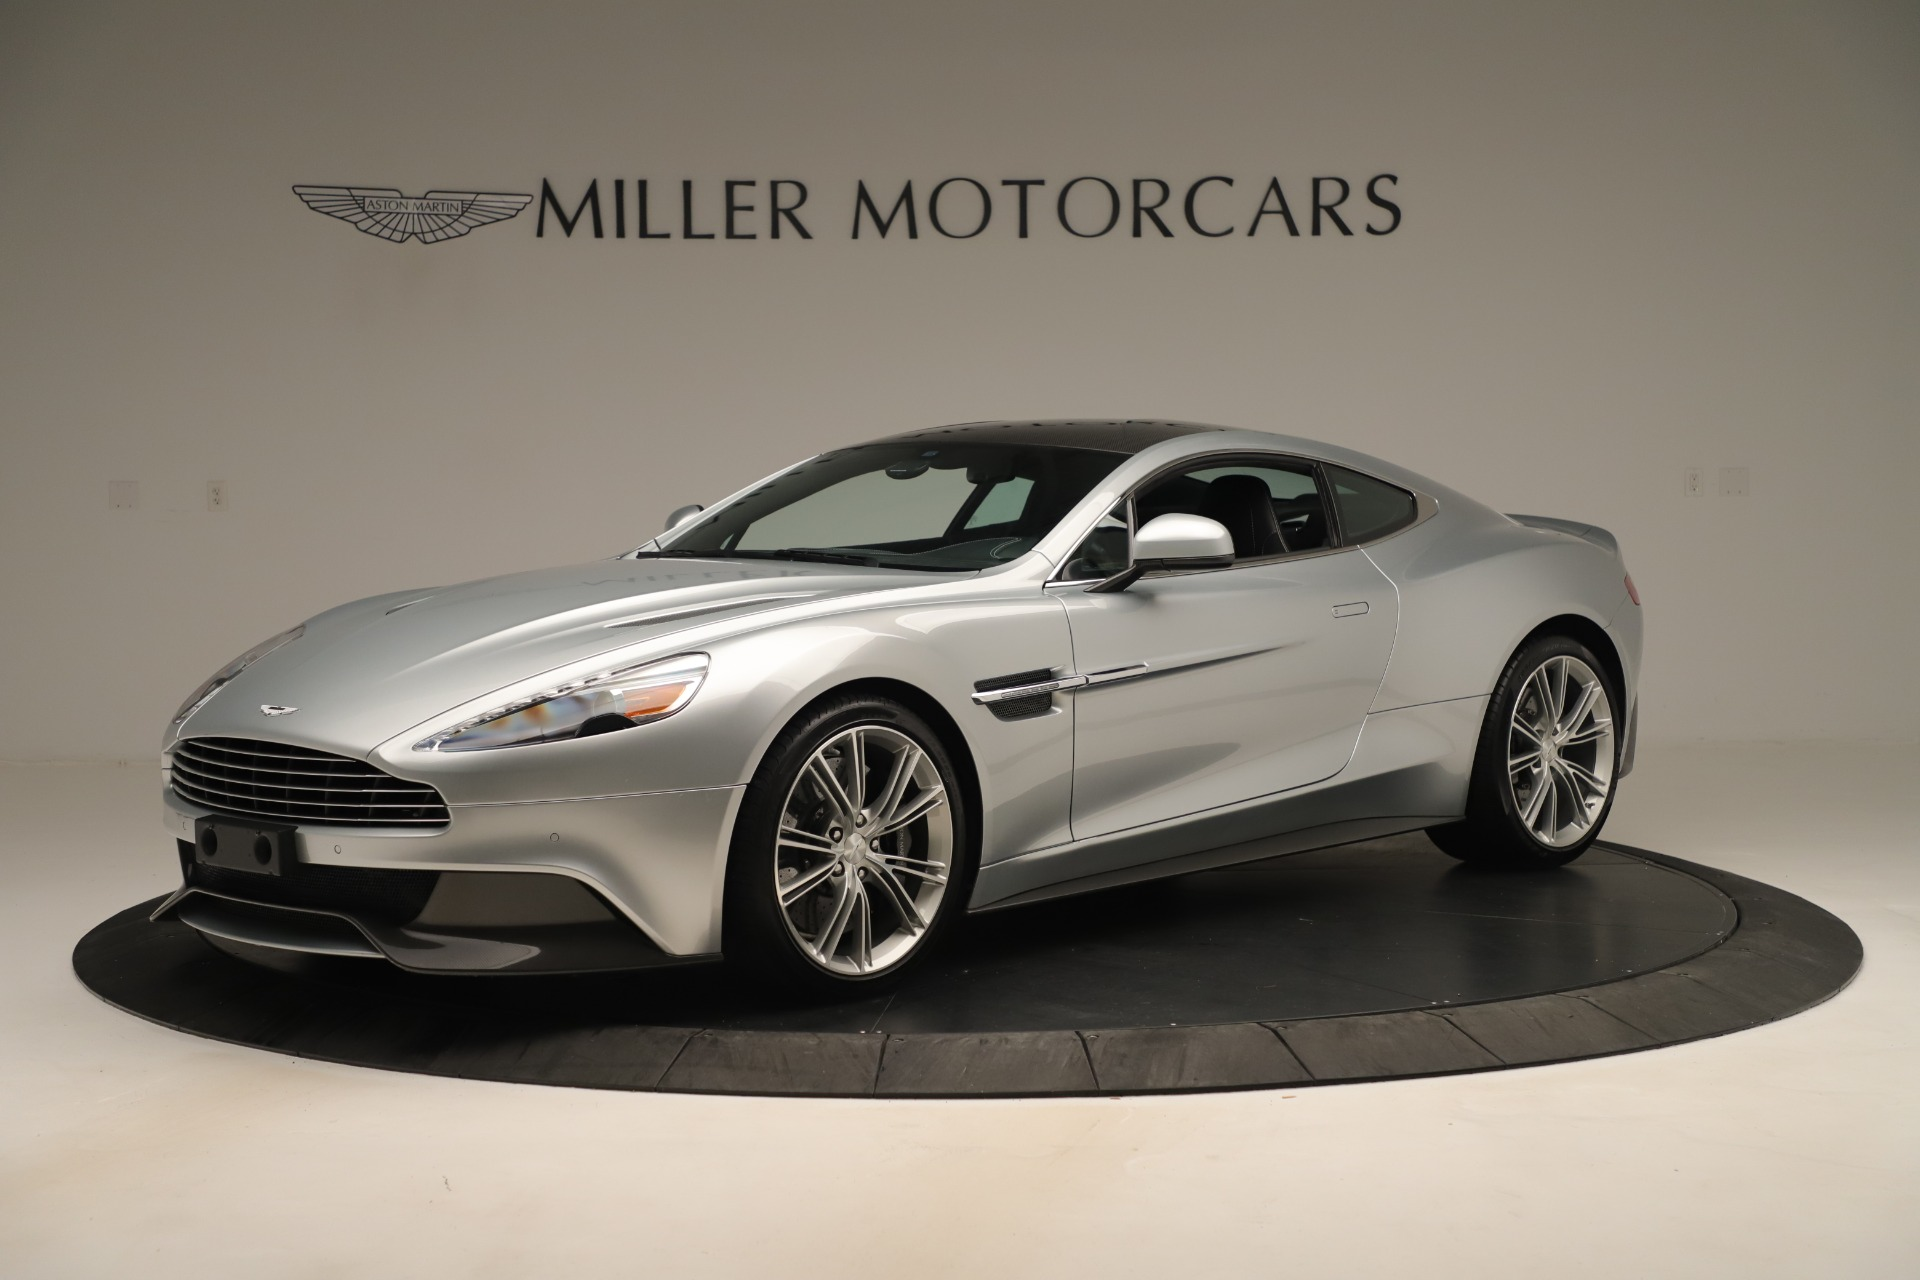 Used 2014 Aston Martin Vanquish Coupe for sale $119,900 at Alfa Romeo of Westport in Westport CT 06880 1